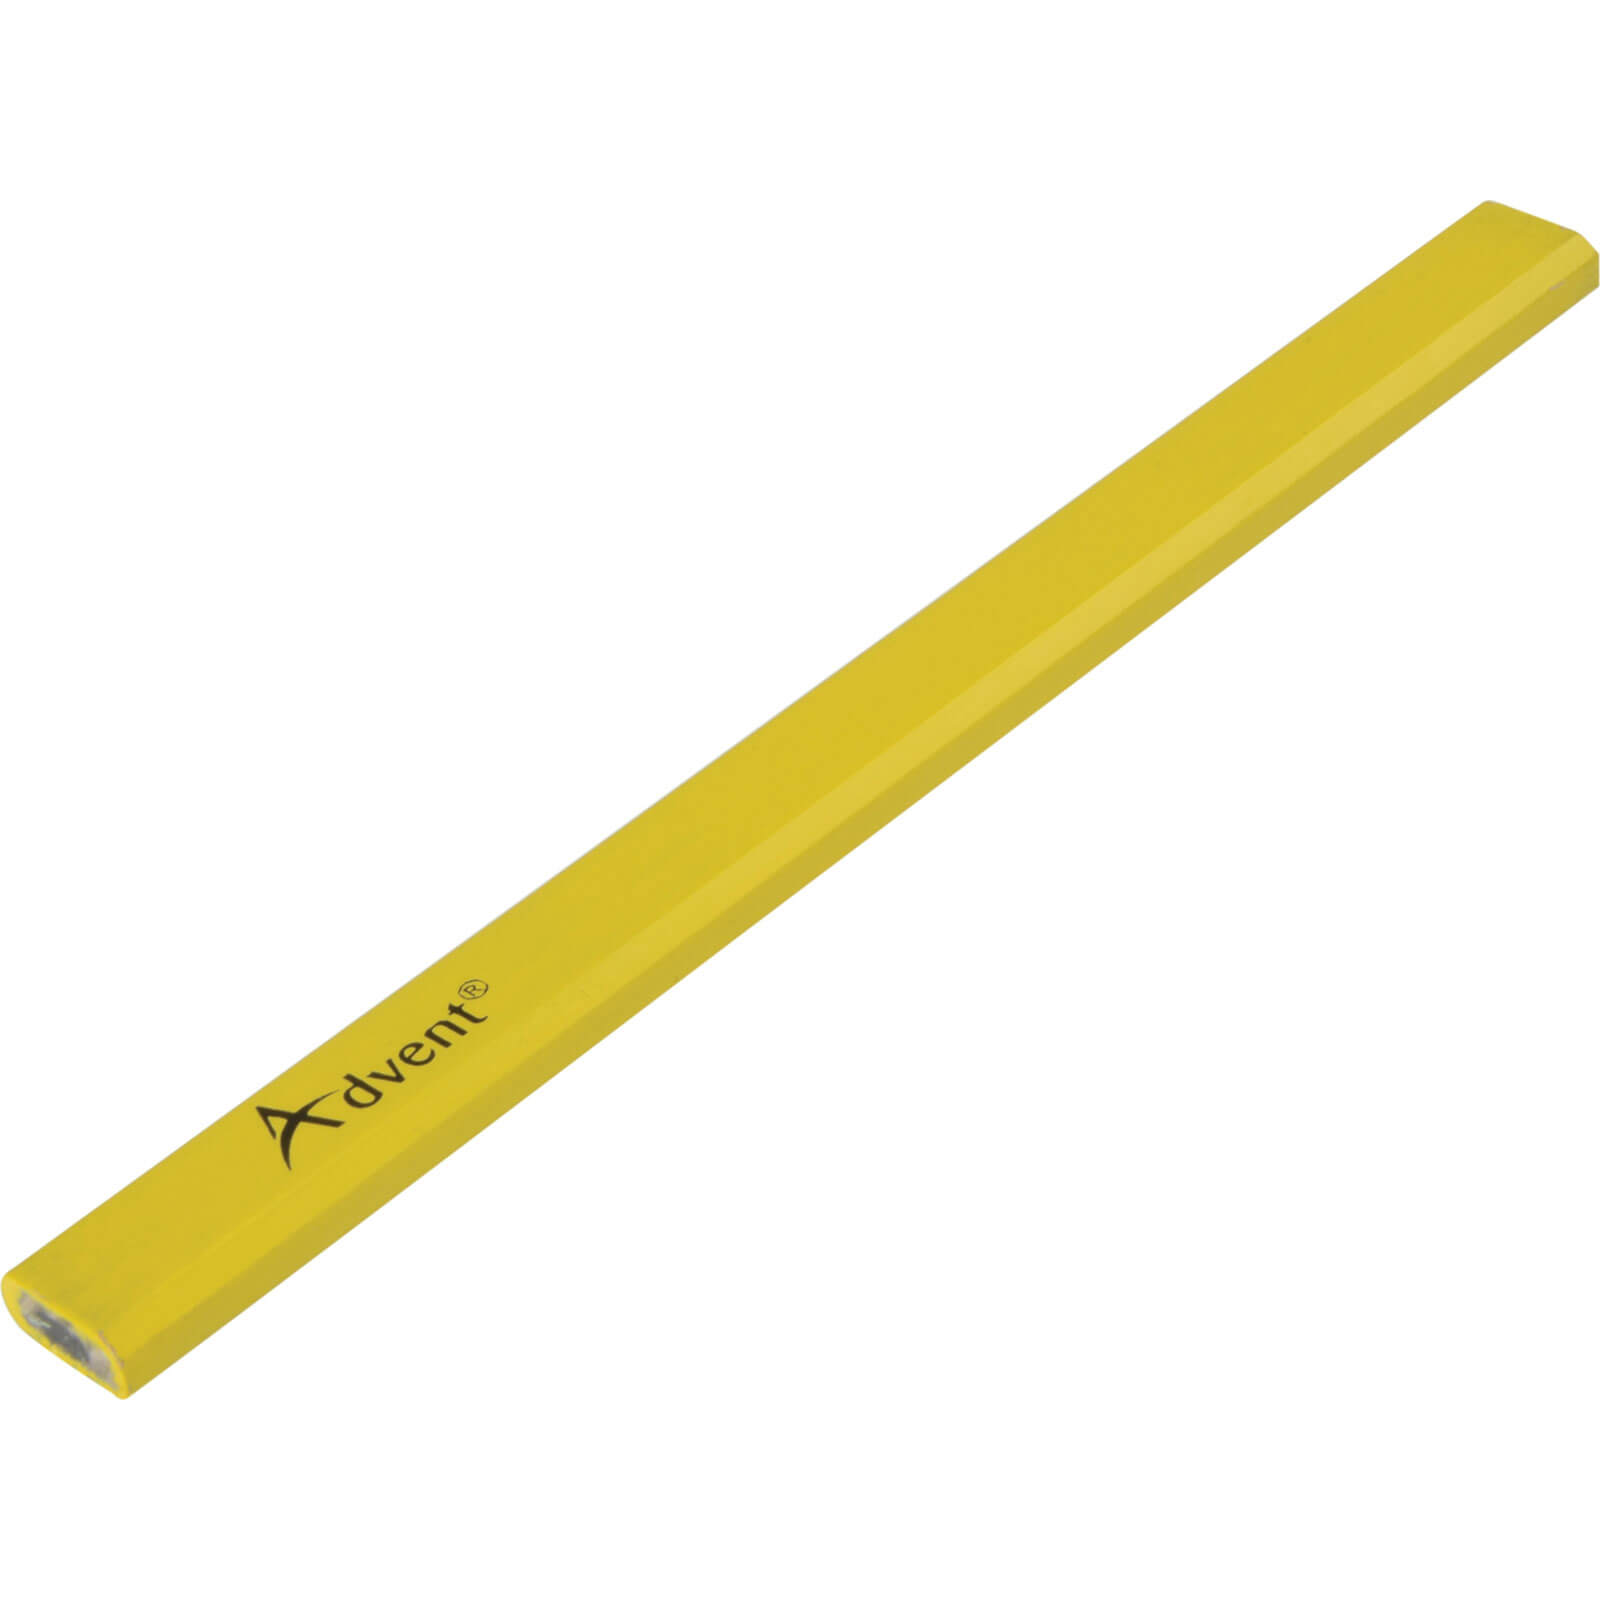 Image of Advent Yellow Medium Lead Carpenter Pencils Pack of 72